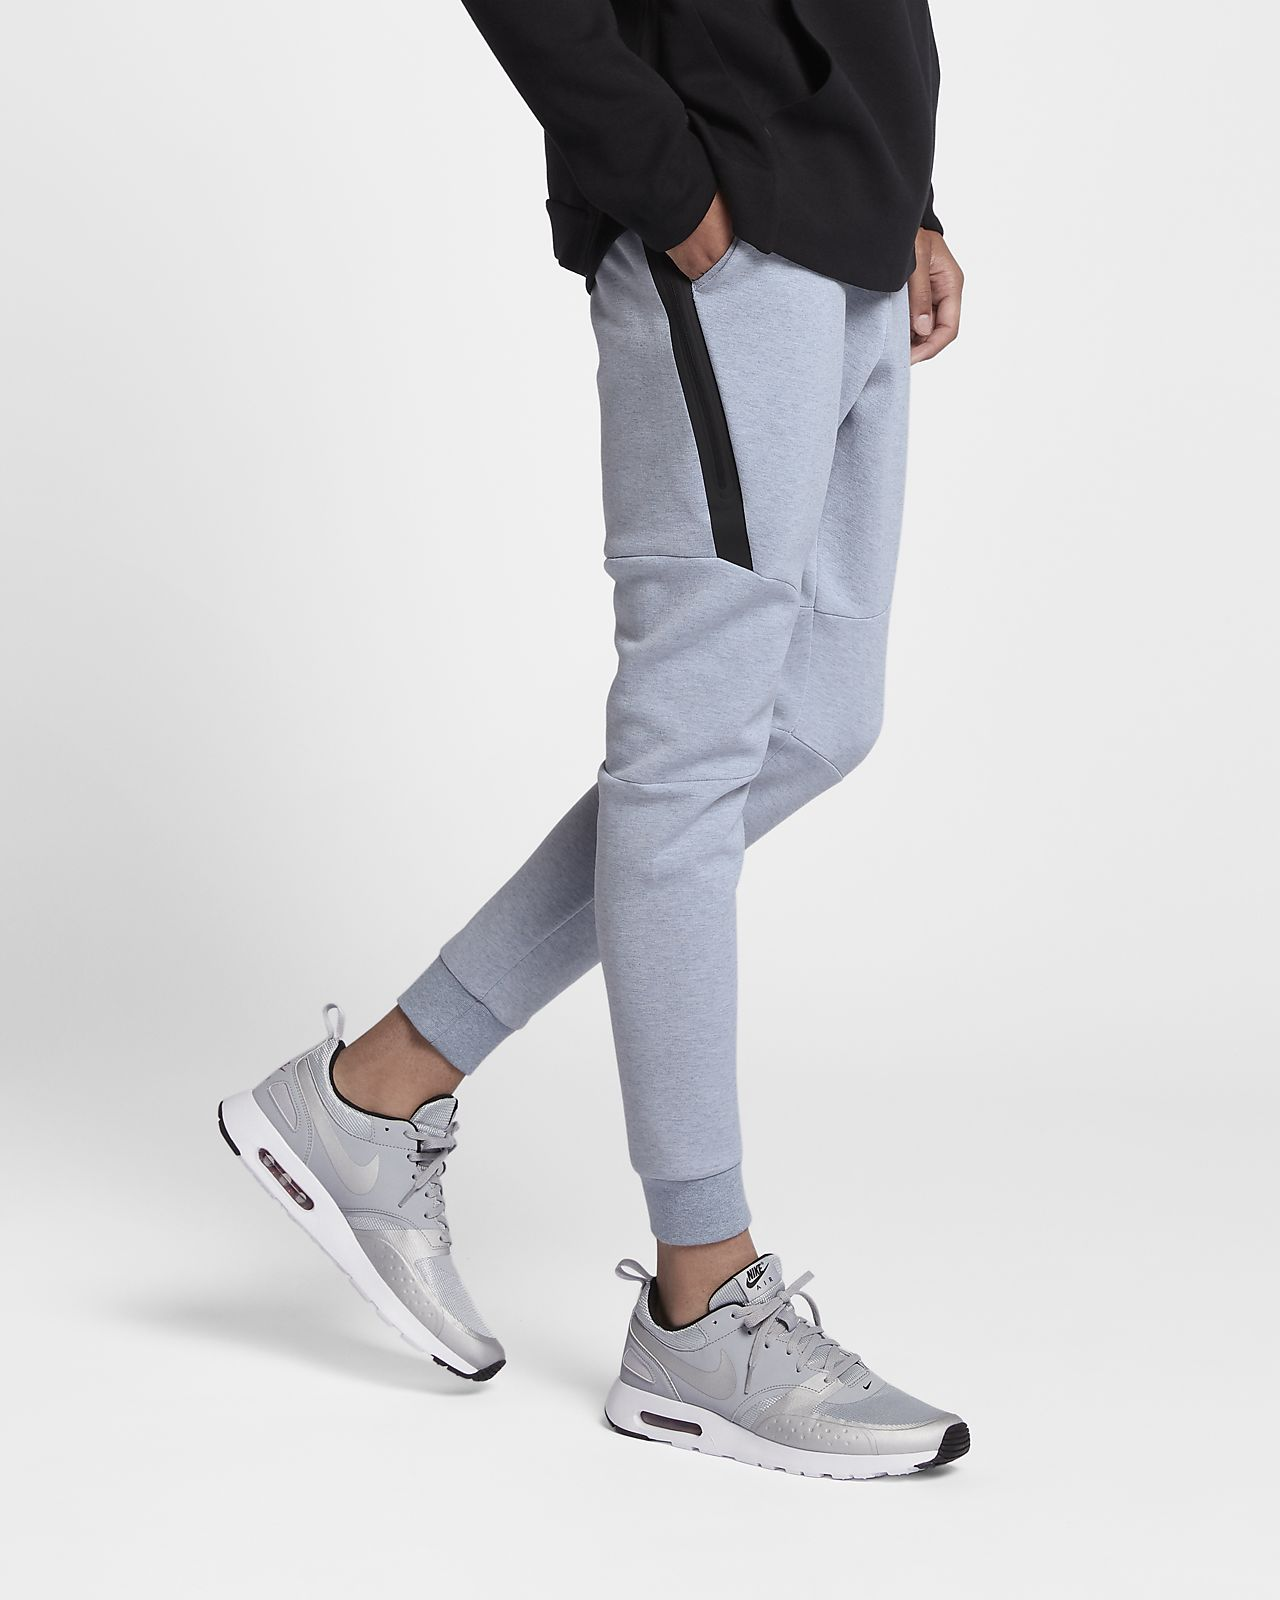 ... Nike Sportswear Tech Fleece Men's Joggers